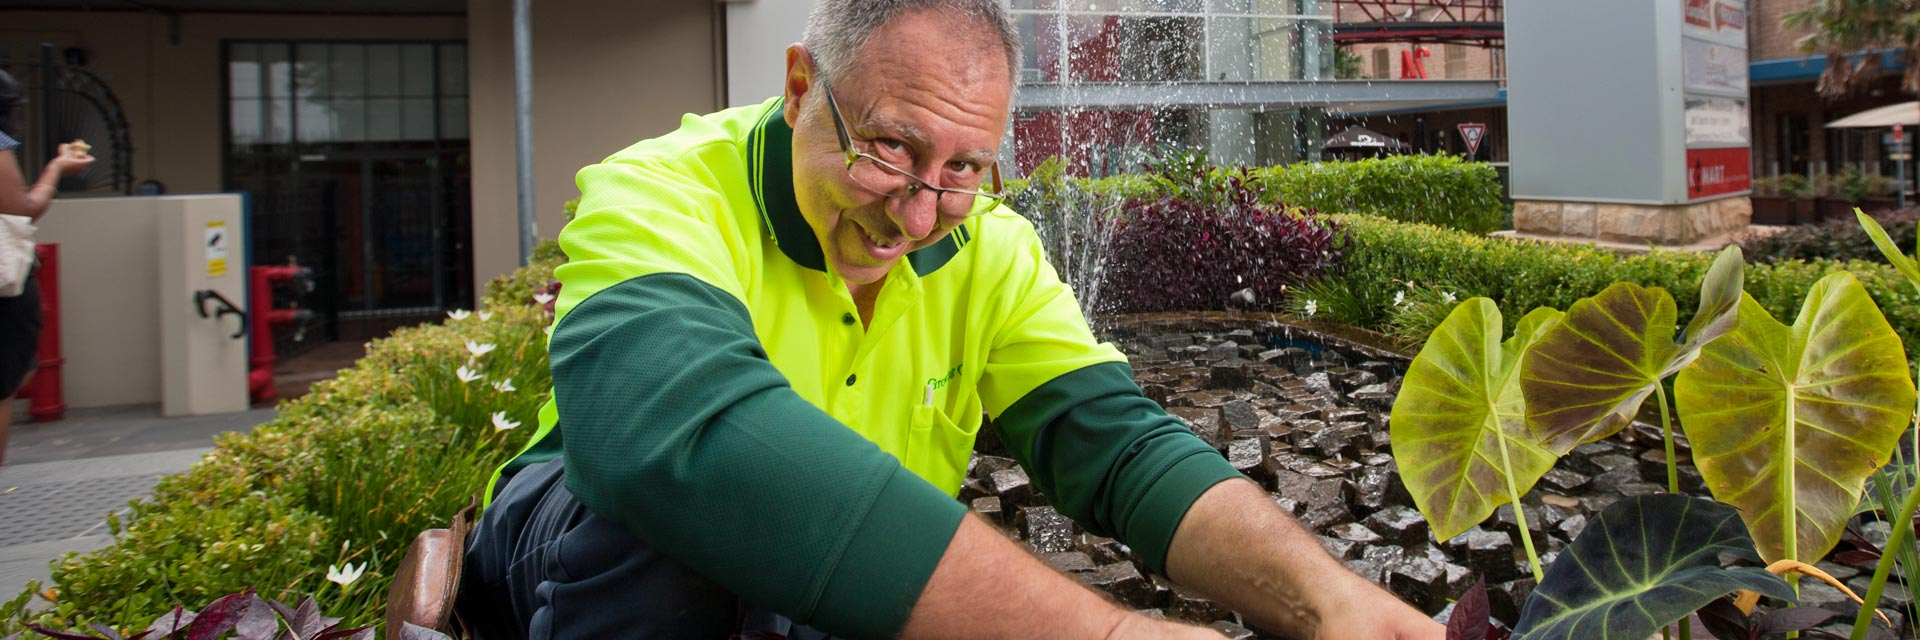 Man with a disability working in commercial grounds maintenance